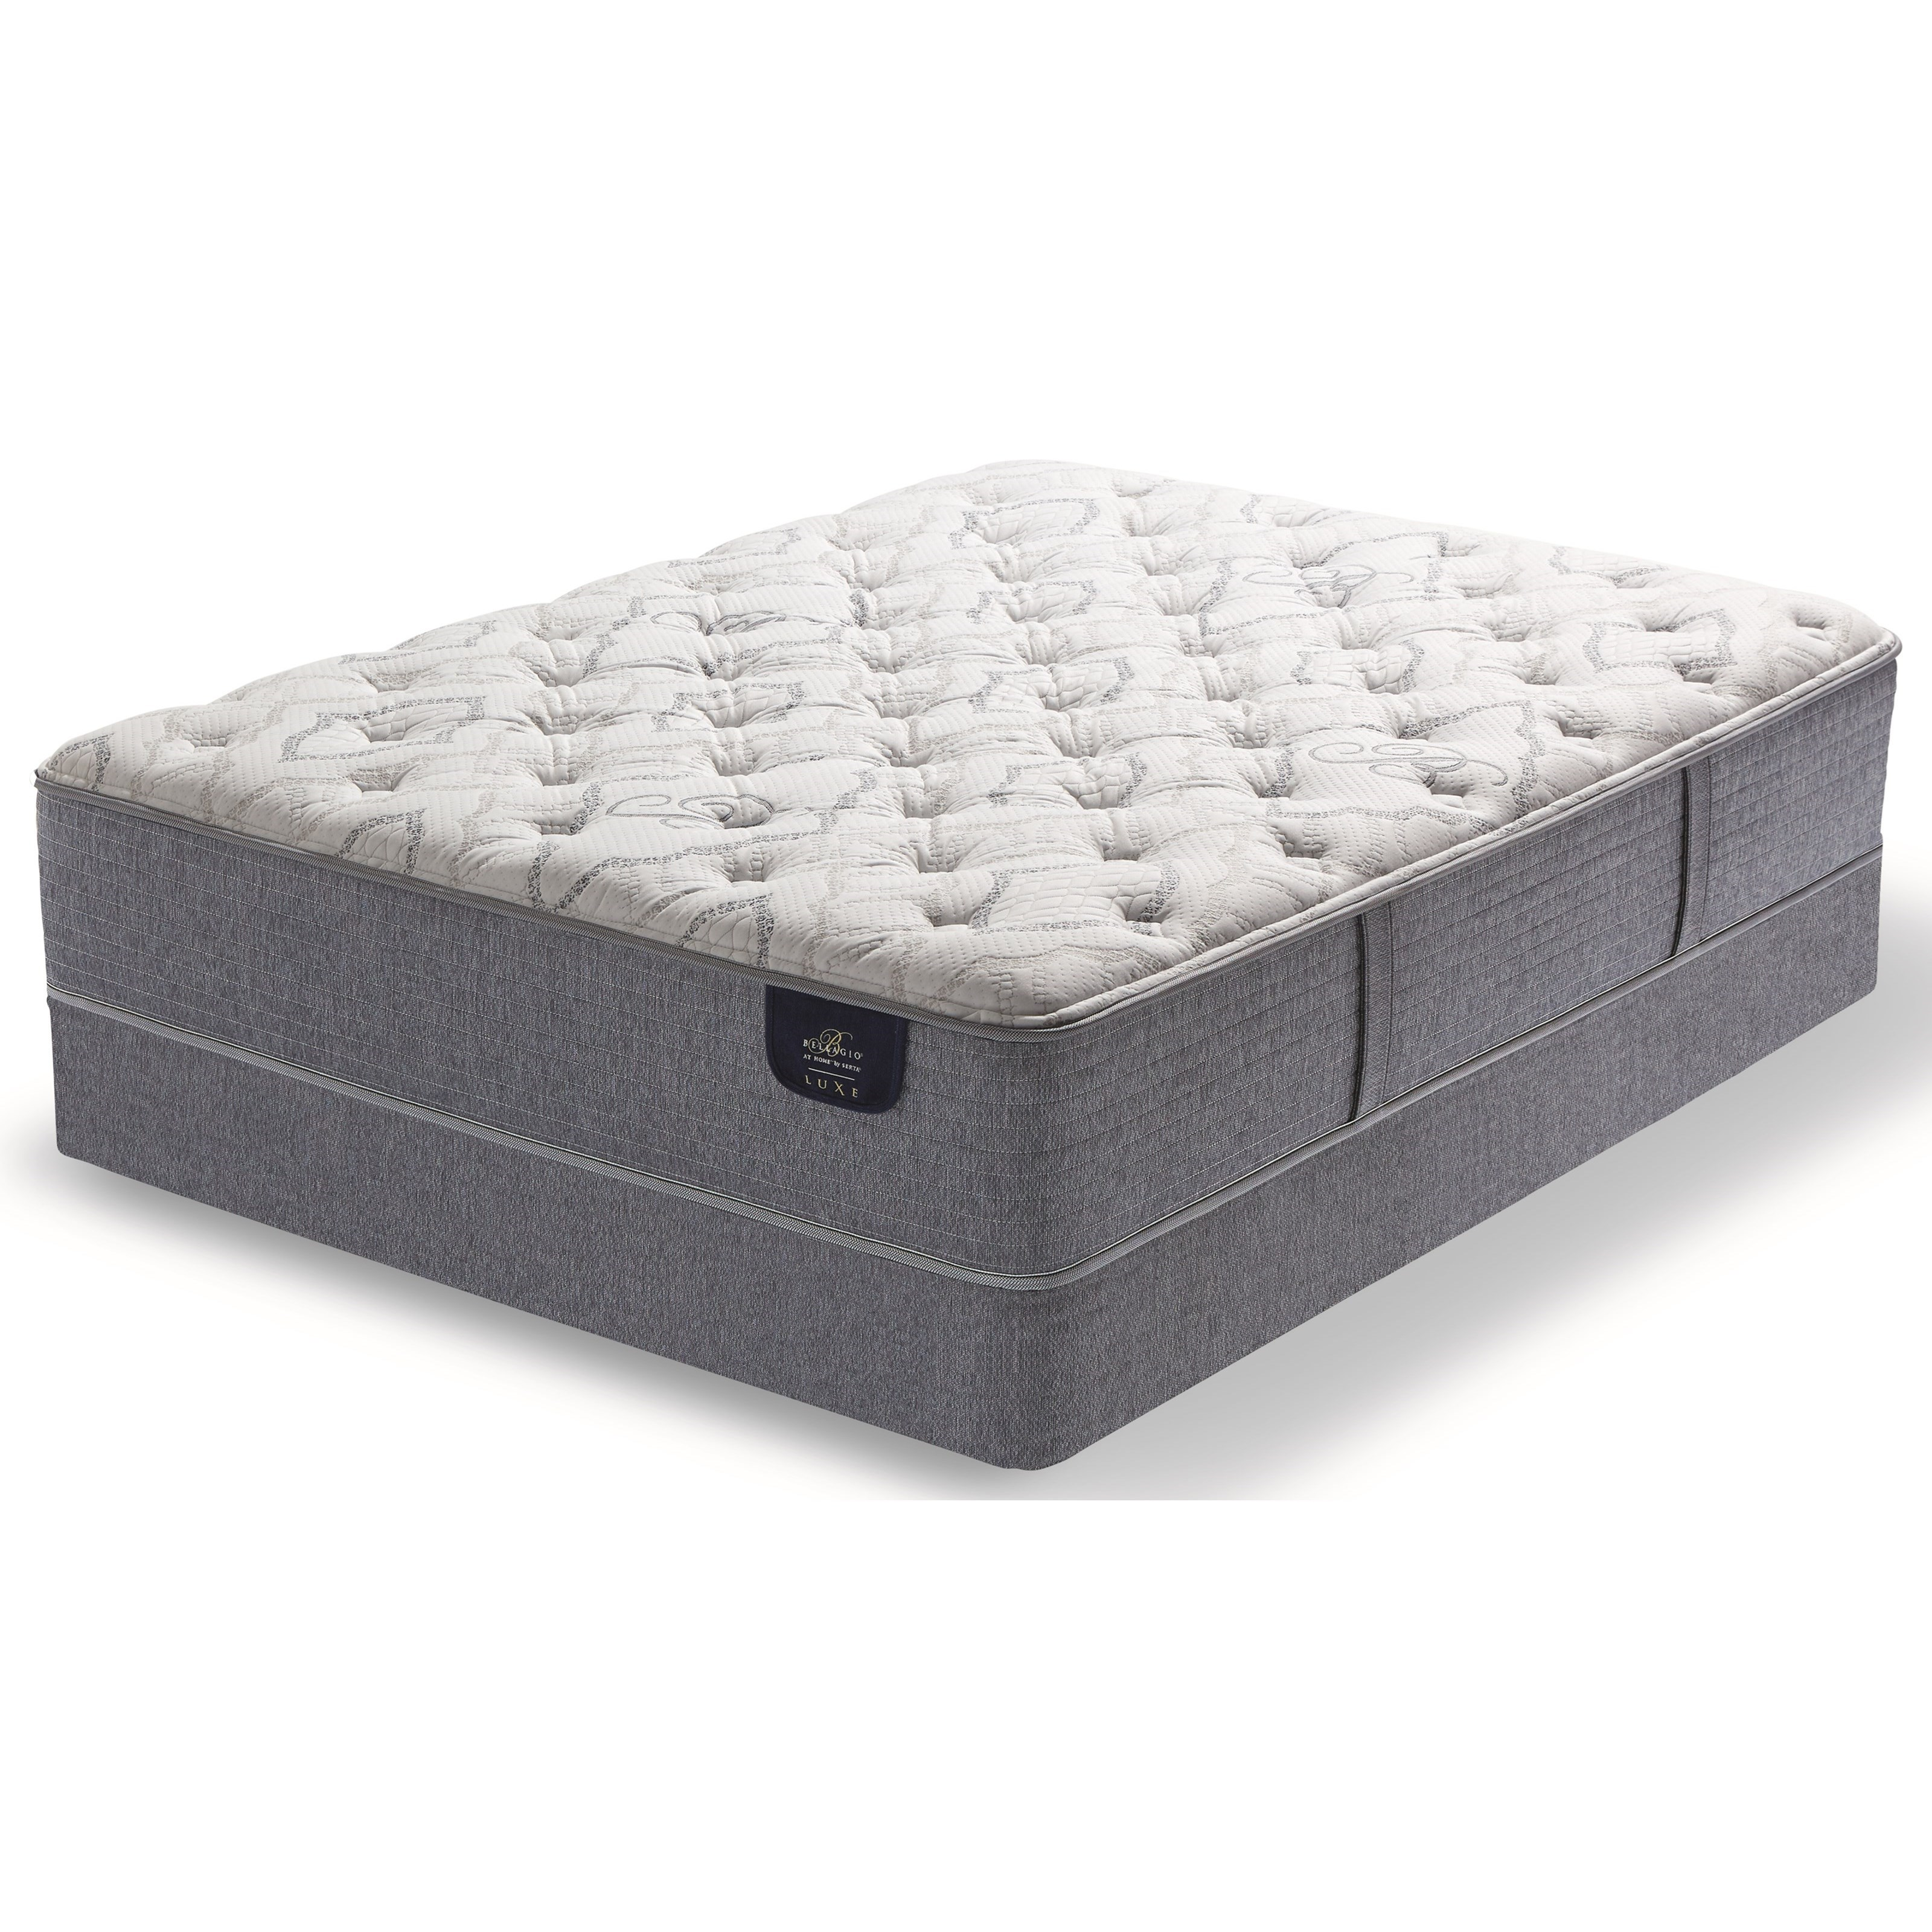 trim firmqueen threshold serta item firm queen mattress products height t ps width pshybridfirm highridge hybrid belfort